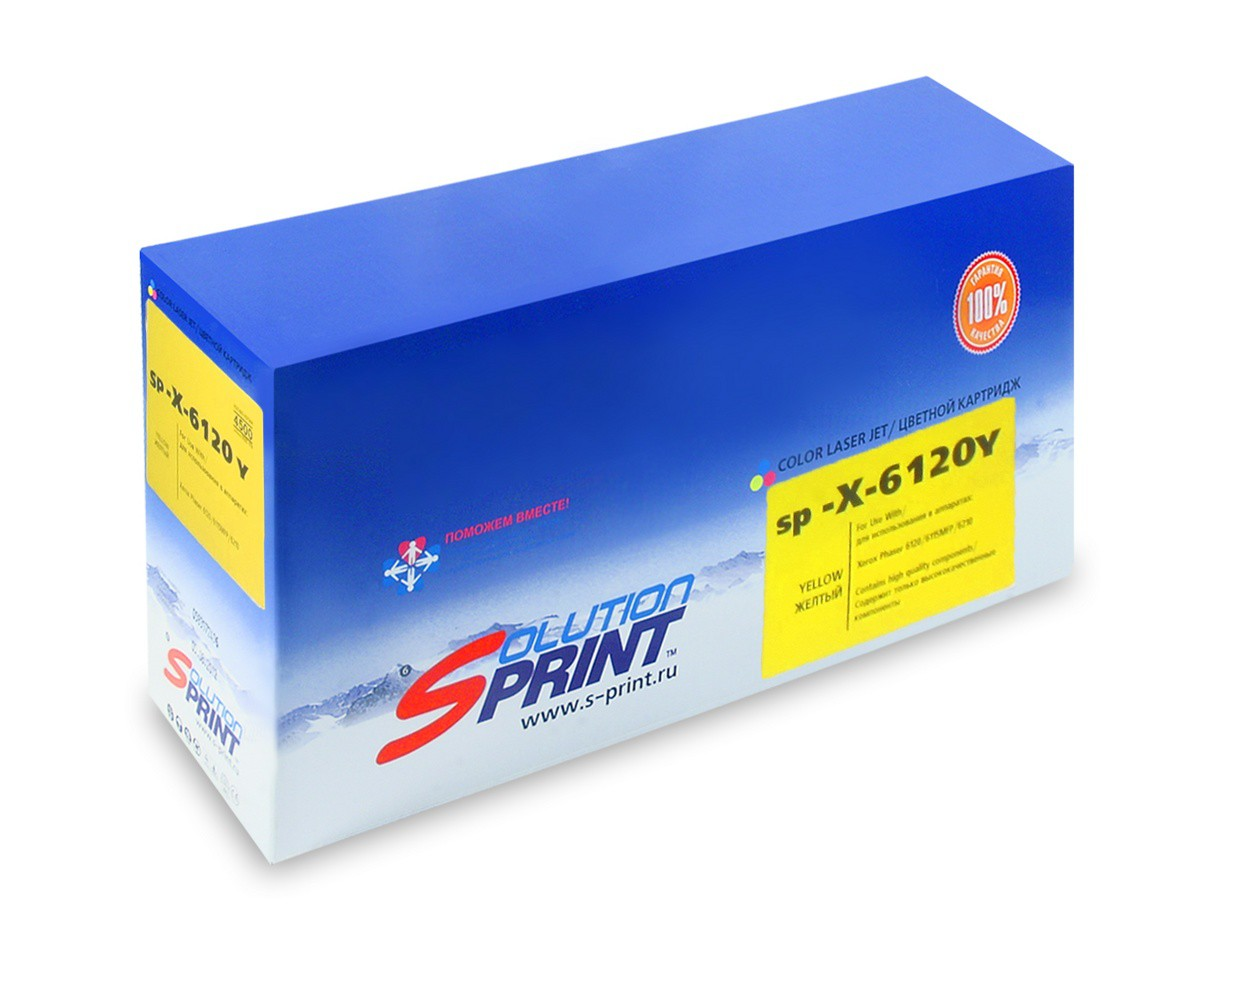 Картридж лазерный SolutionPrint SP-X-6120Y (4500 коп.; Xerox Phaser 6115/ 6120; желтый)